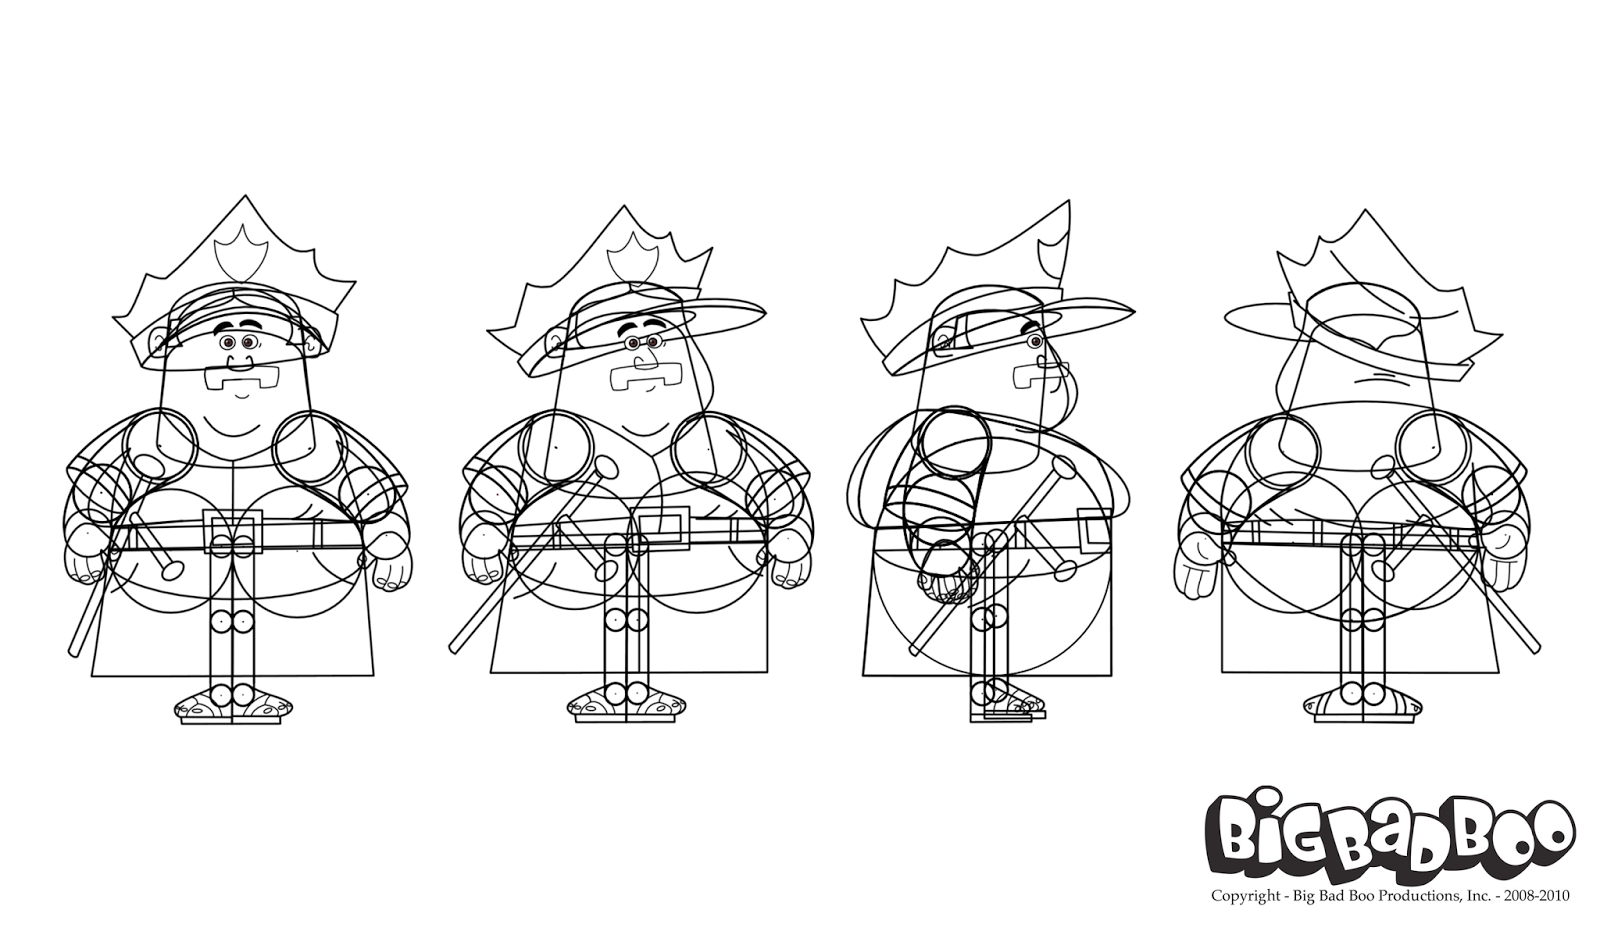 024C_sheriff0001_outline copy.png